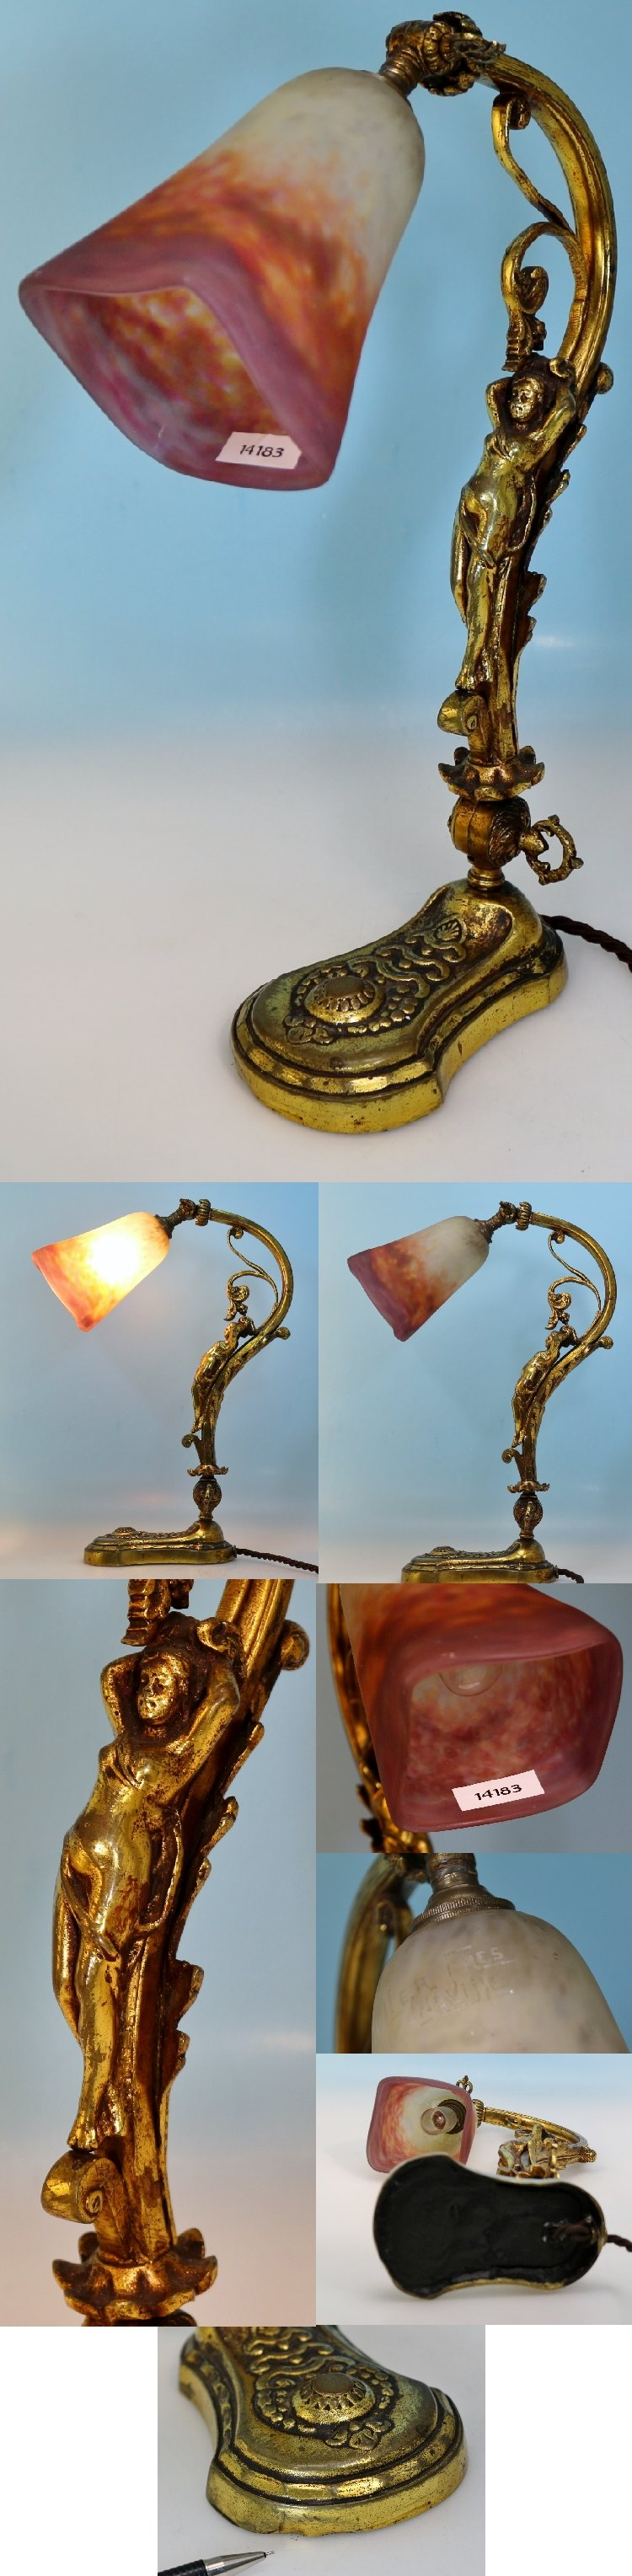 jugendstil lampe muller freres lun ville p te de verre glas figurenstand ebay. Black Bedroom Furniture Sets. Home Design Ideas